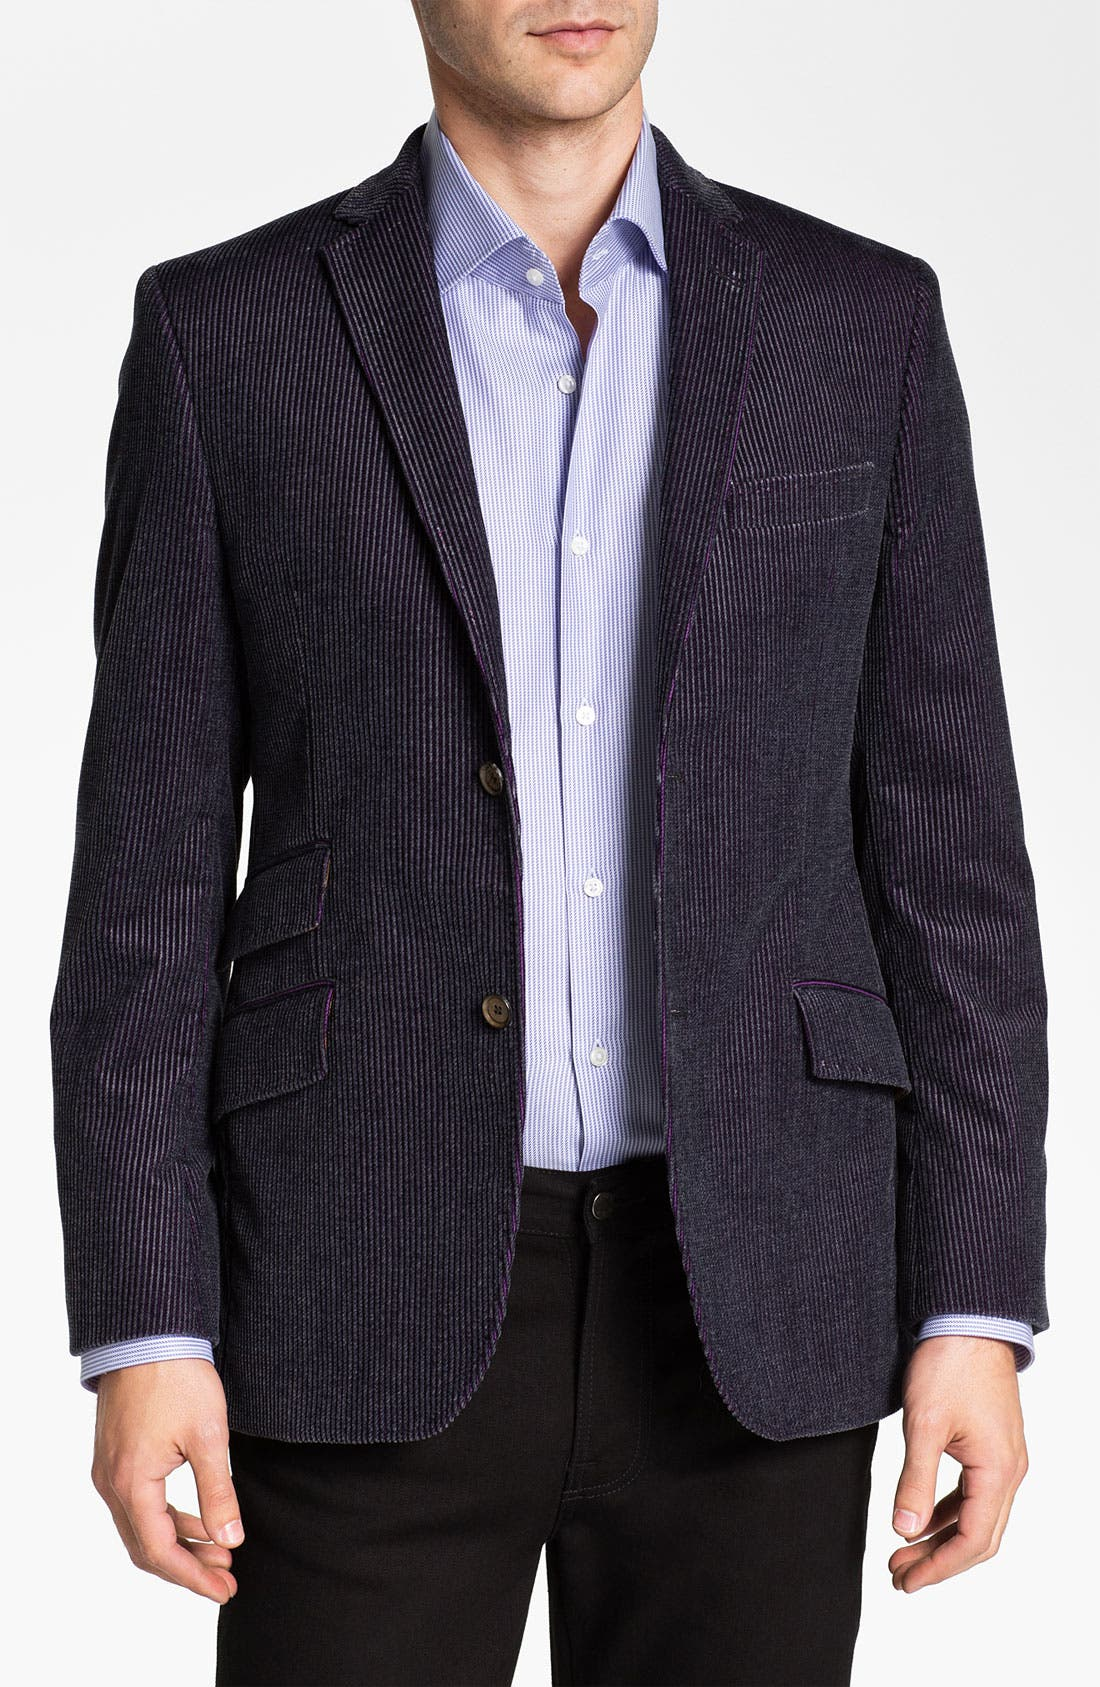 Alternate Image 1 Selected - Ted Baker London 'Global' Trim Fit Corduroy Sportcoat